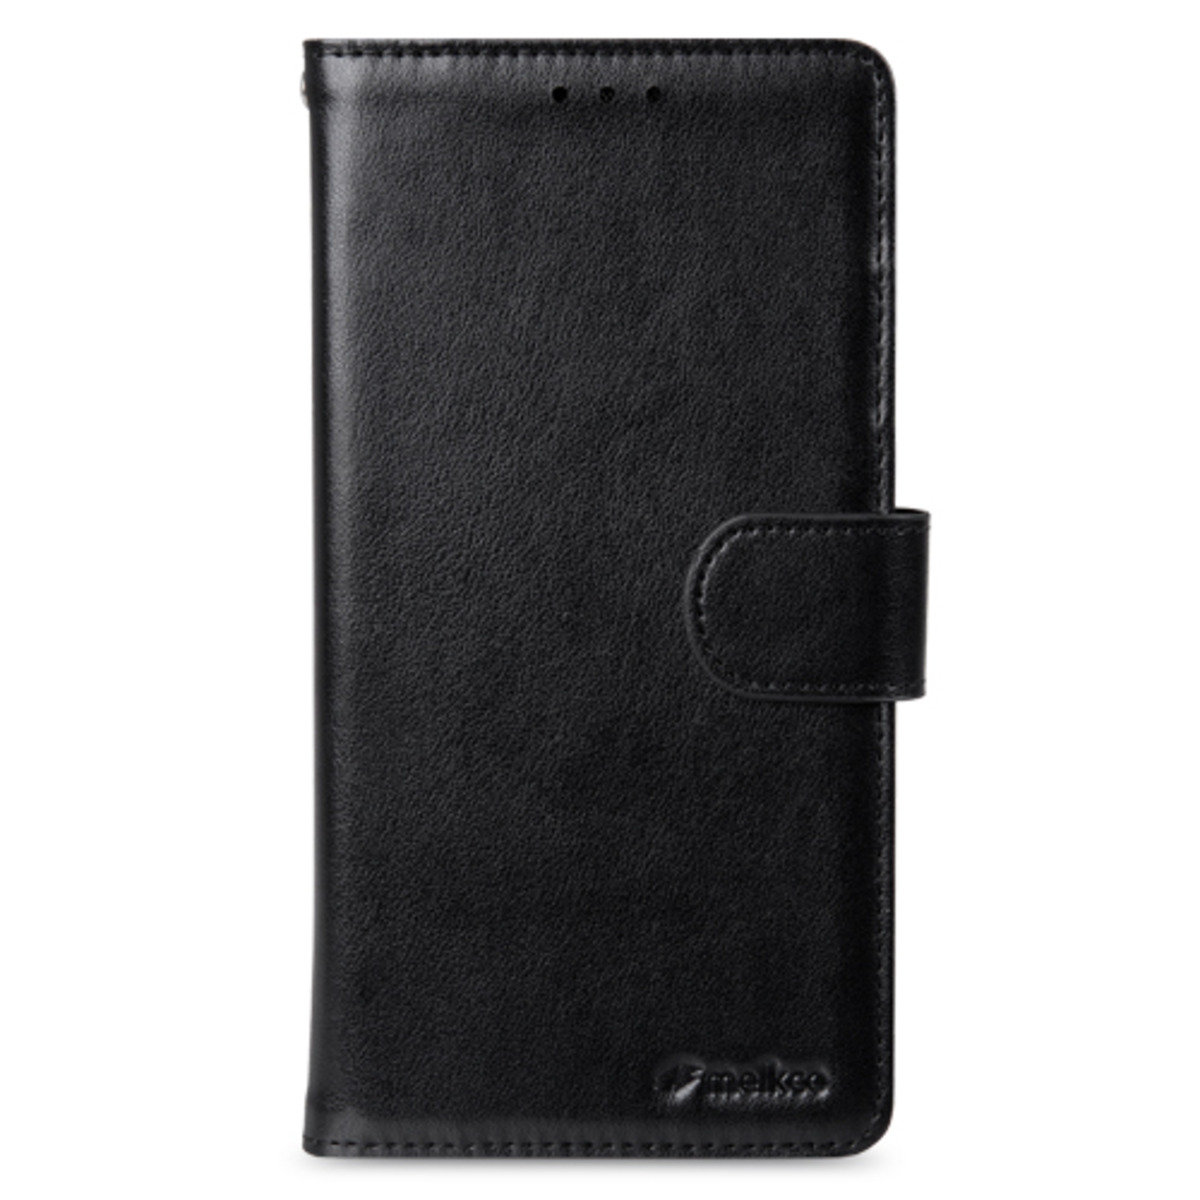 Samsung Galaxy S6 Edge Plus Wallet Book Type 人造皮手機套 - 黑色